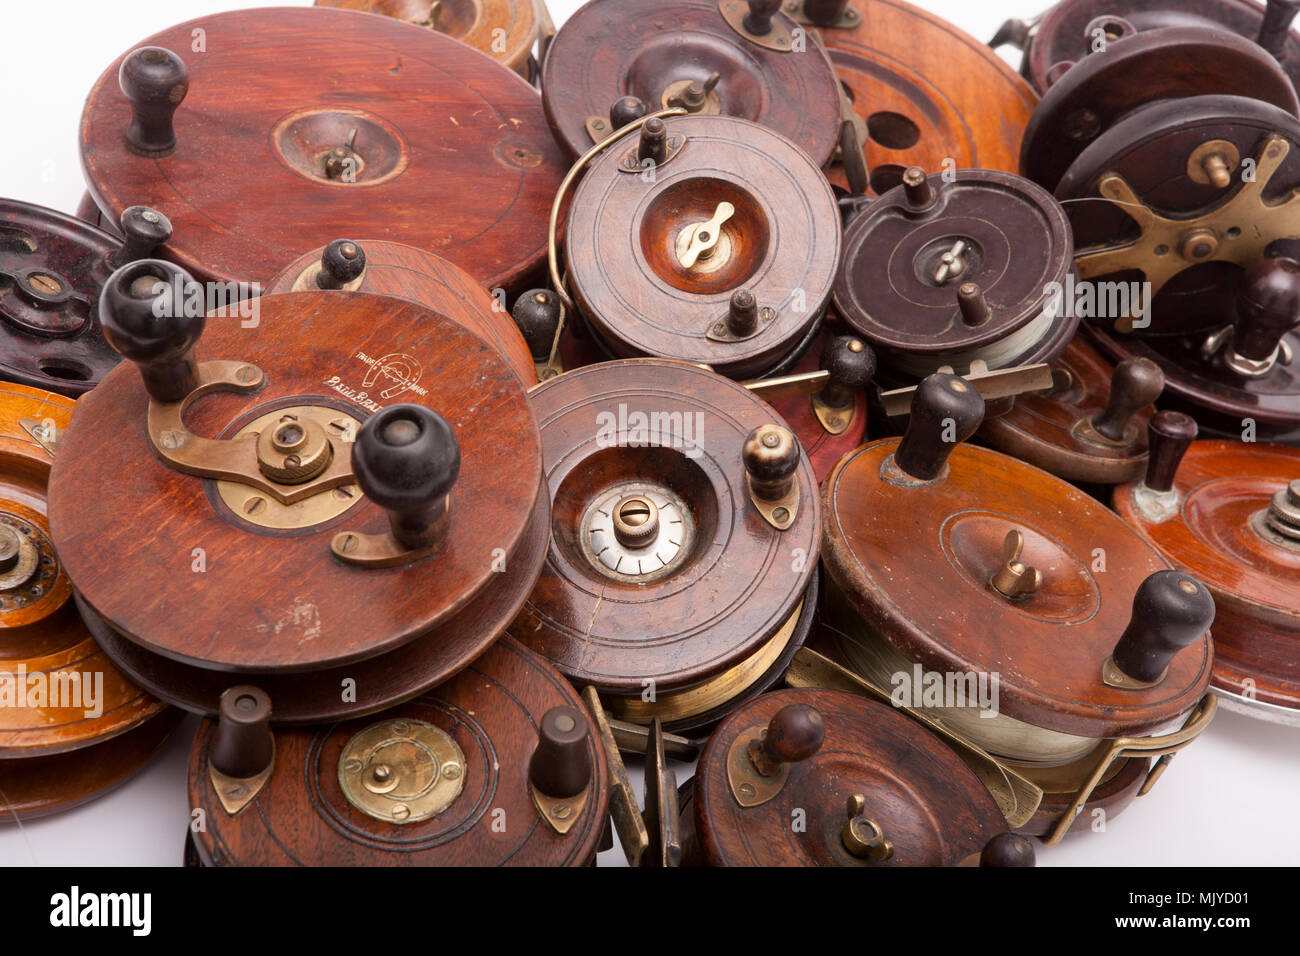 A collection of mostly wooden centrepin fishing reels from a large fishing tackle collection. Dorset England UK Stock Photo